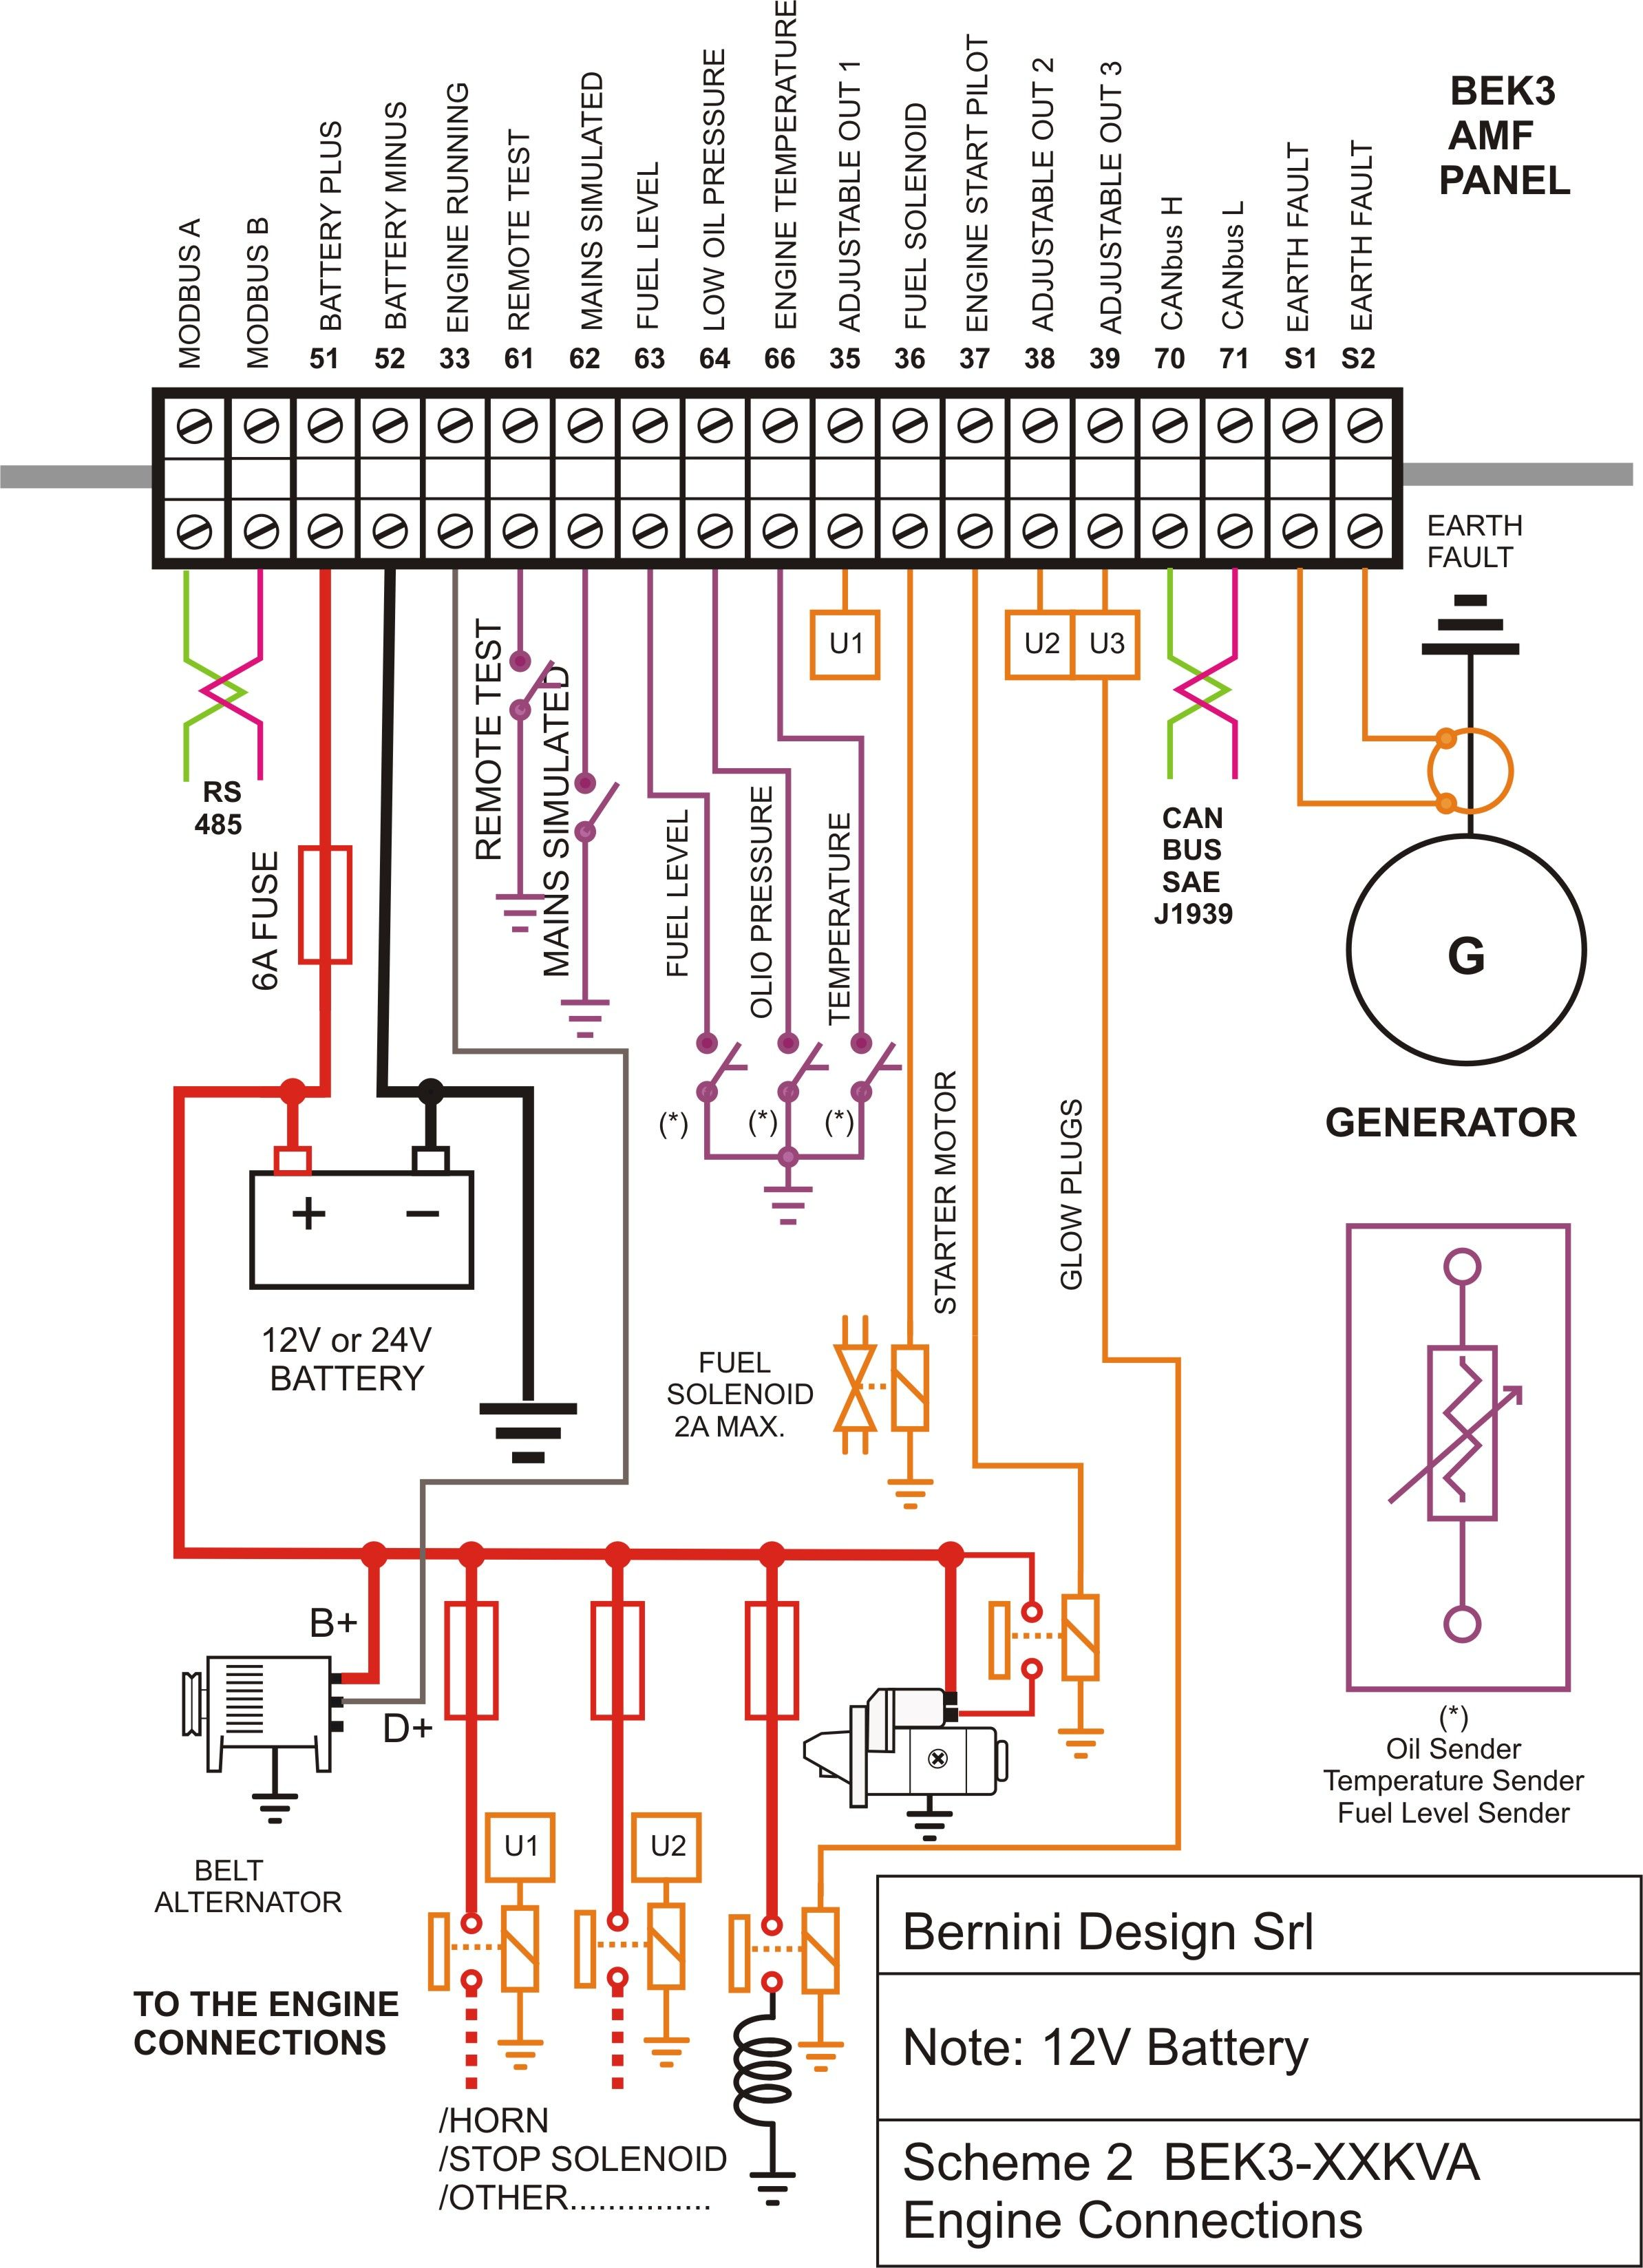 diesel generator control panel wiring diagram engine connections [ 2387 x 3295 Pixel ]